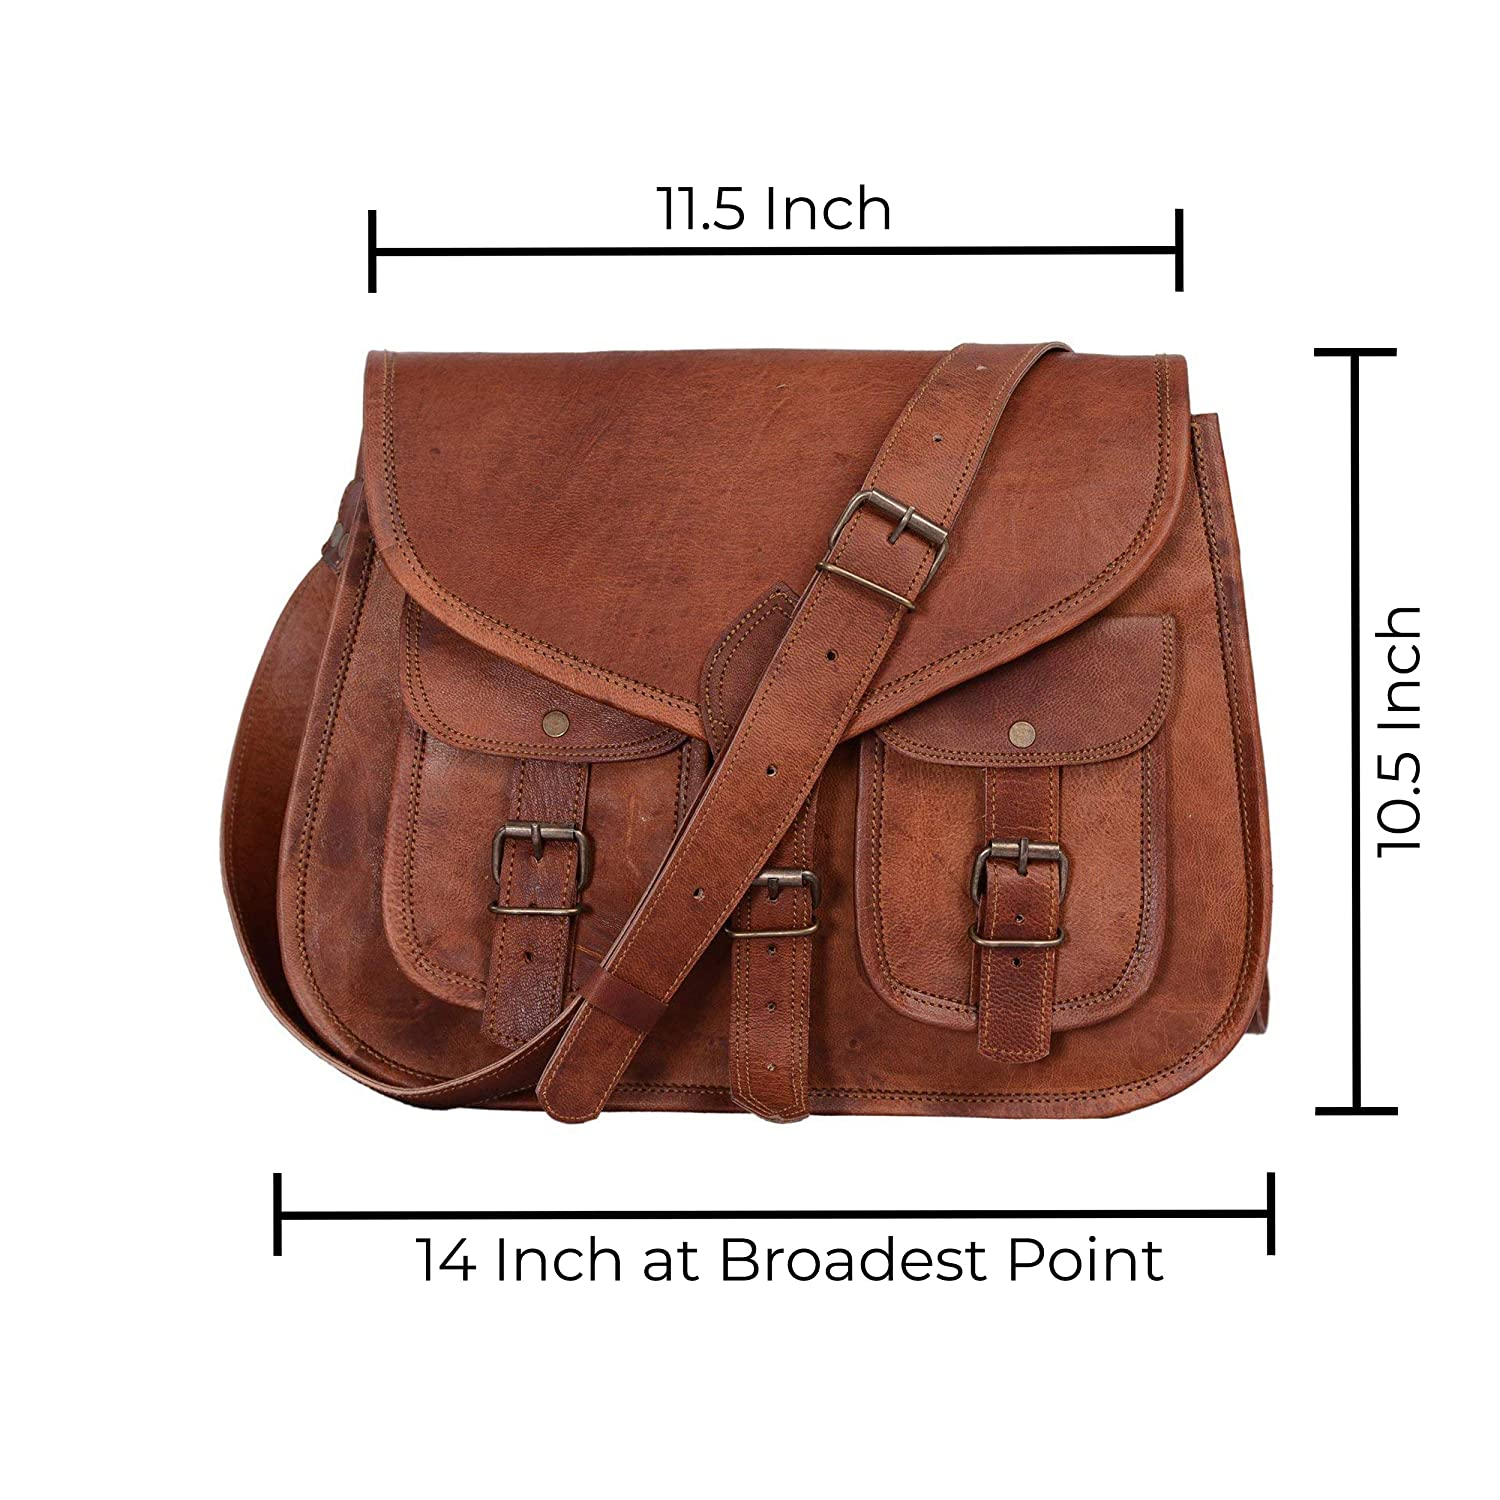 c19abef4a7d5b Amazon.com: KPL 14 Inch Leather Purse Women Shoulder Bag Crossbody Satchel  Ladies Tote Travel Purse Genuine Leather (Tan Brown): Komal's Passion  Leather